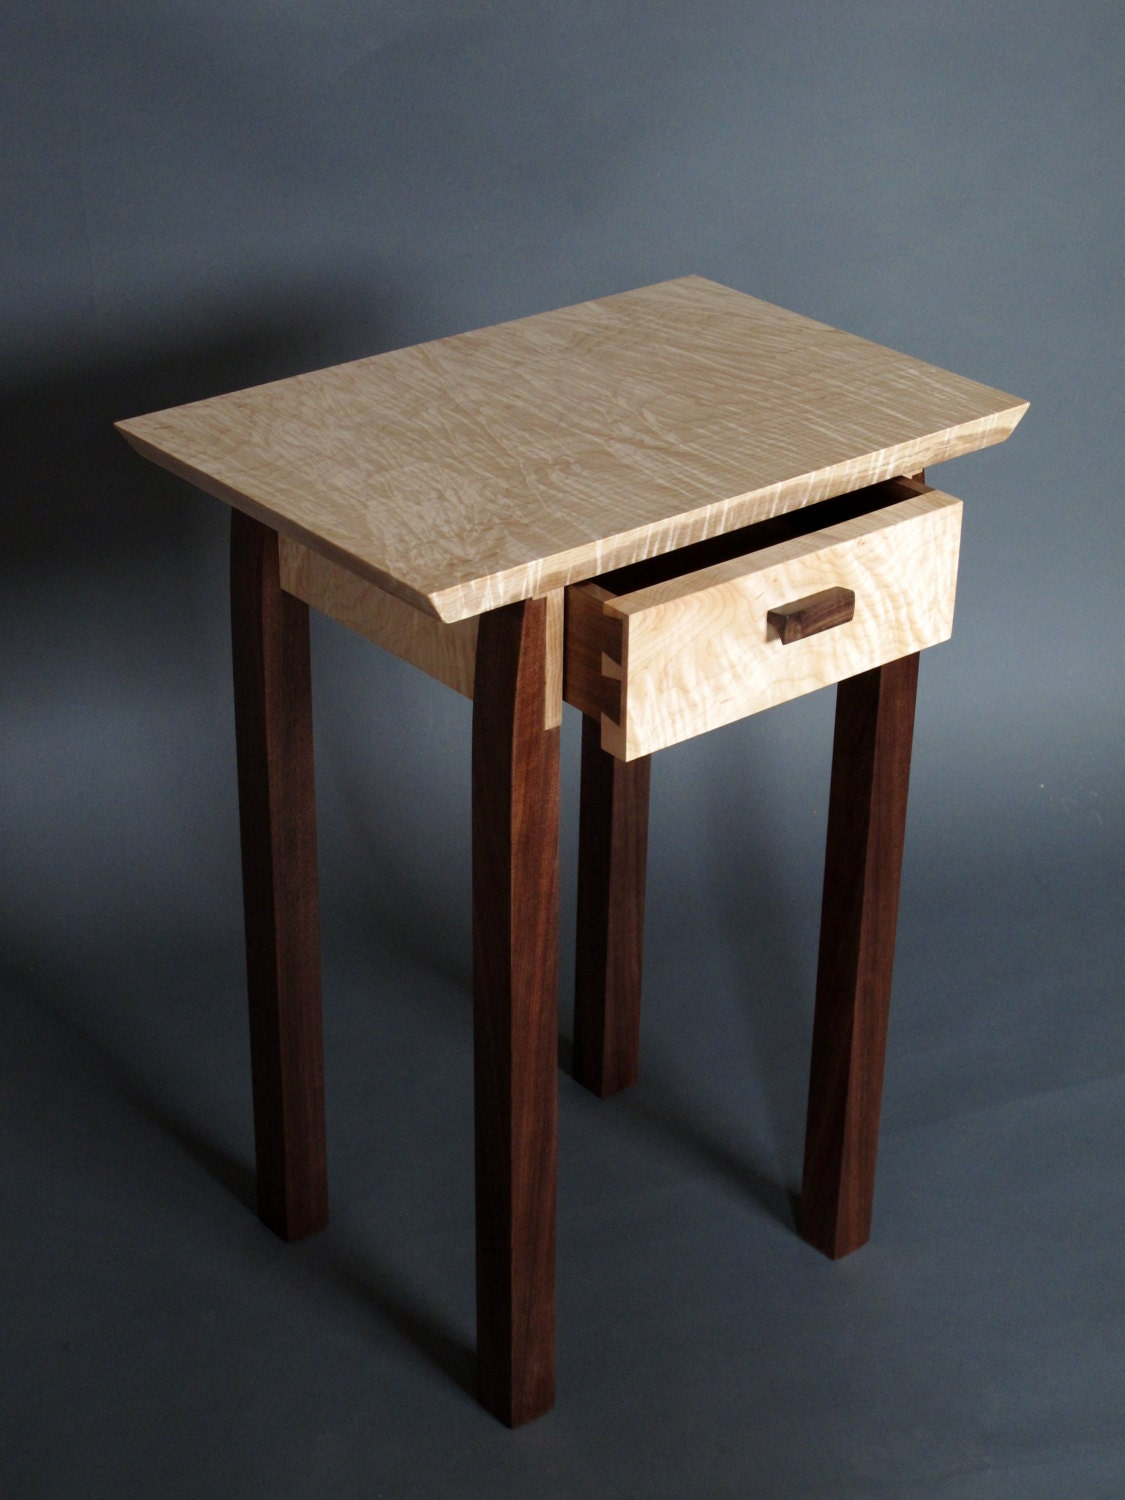 Bed side table with drawer narrow wooden table contemporary for Small wood end table